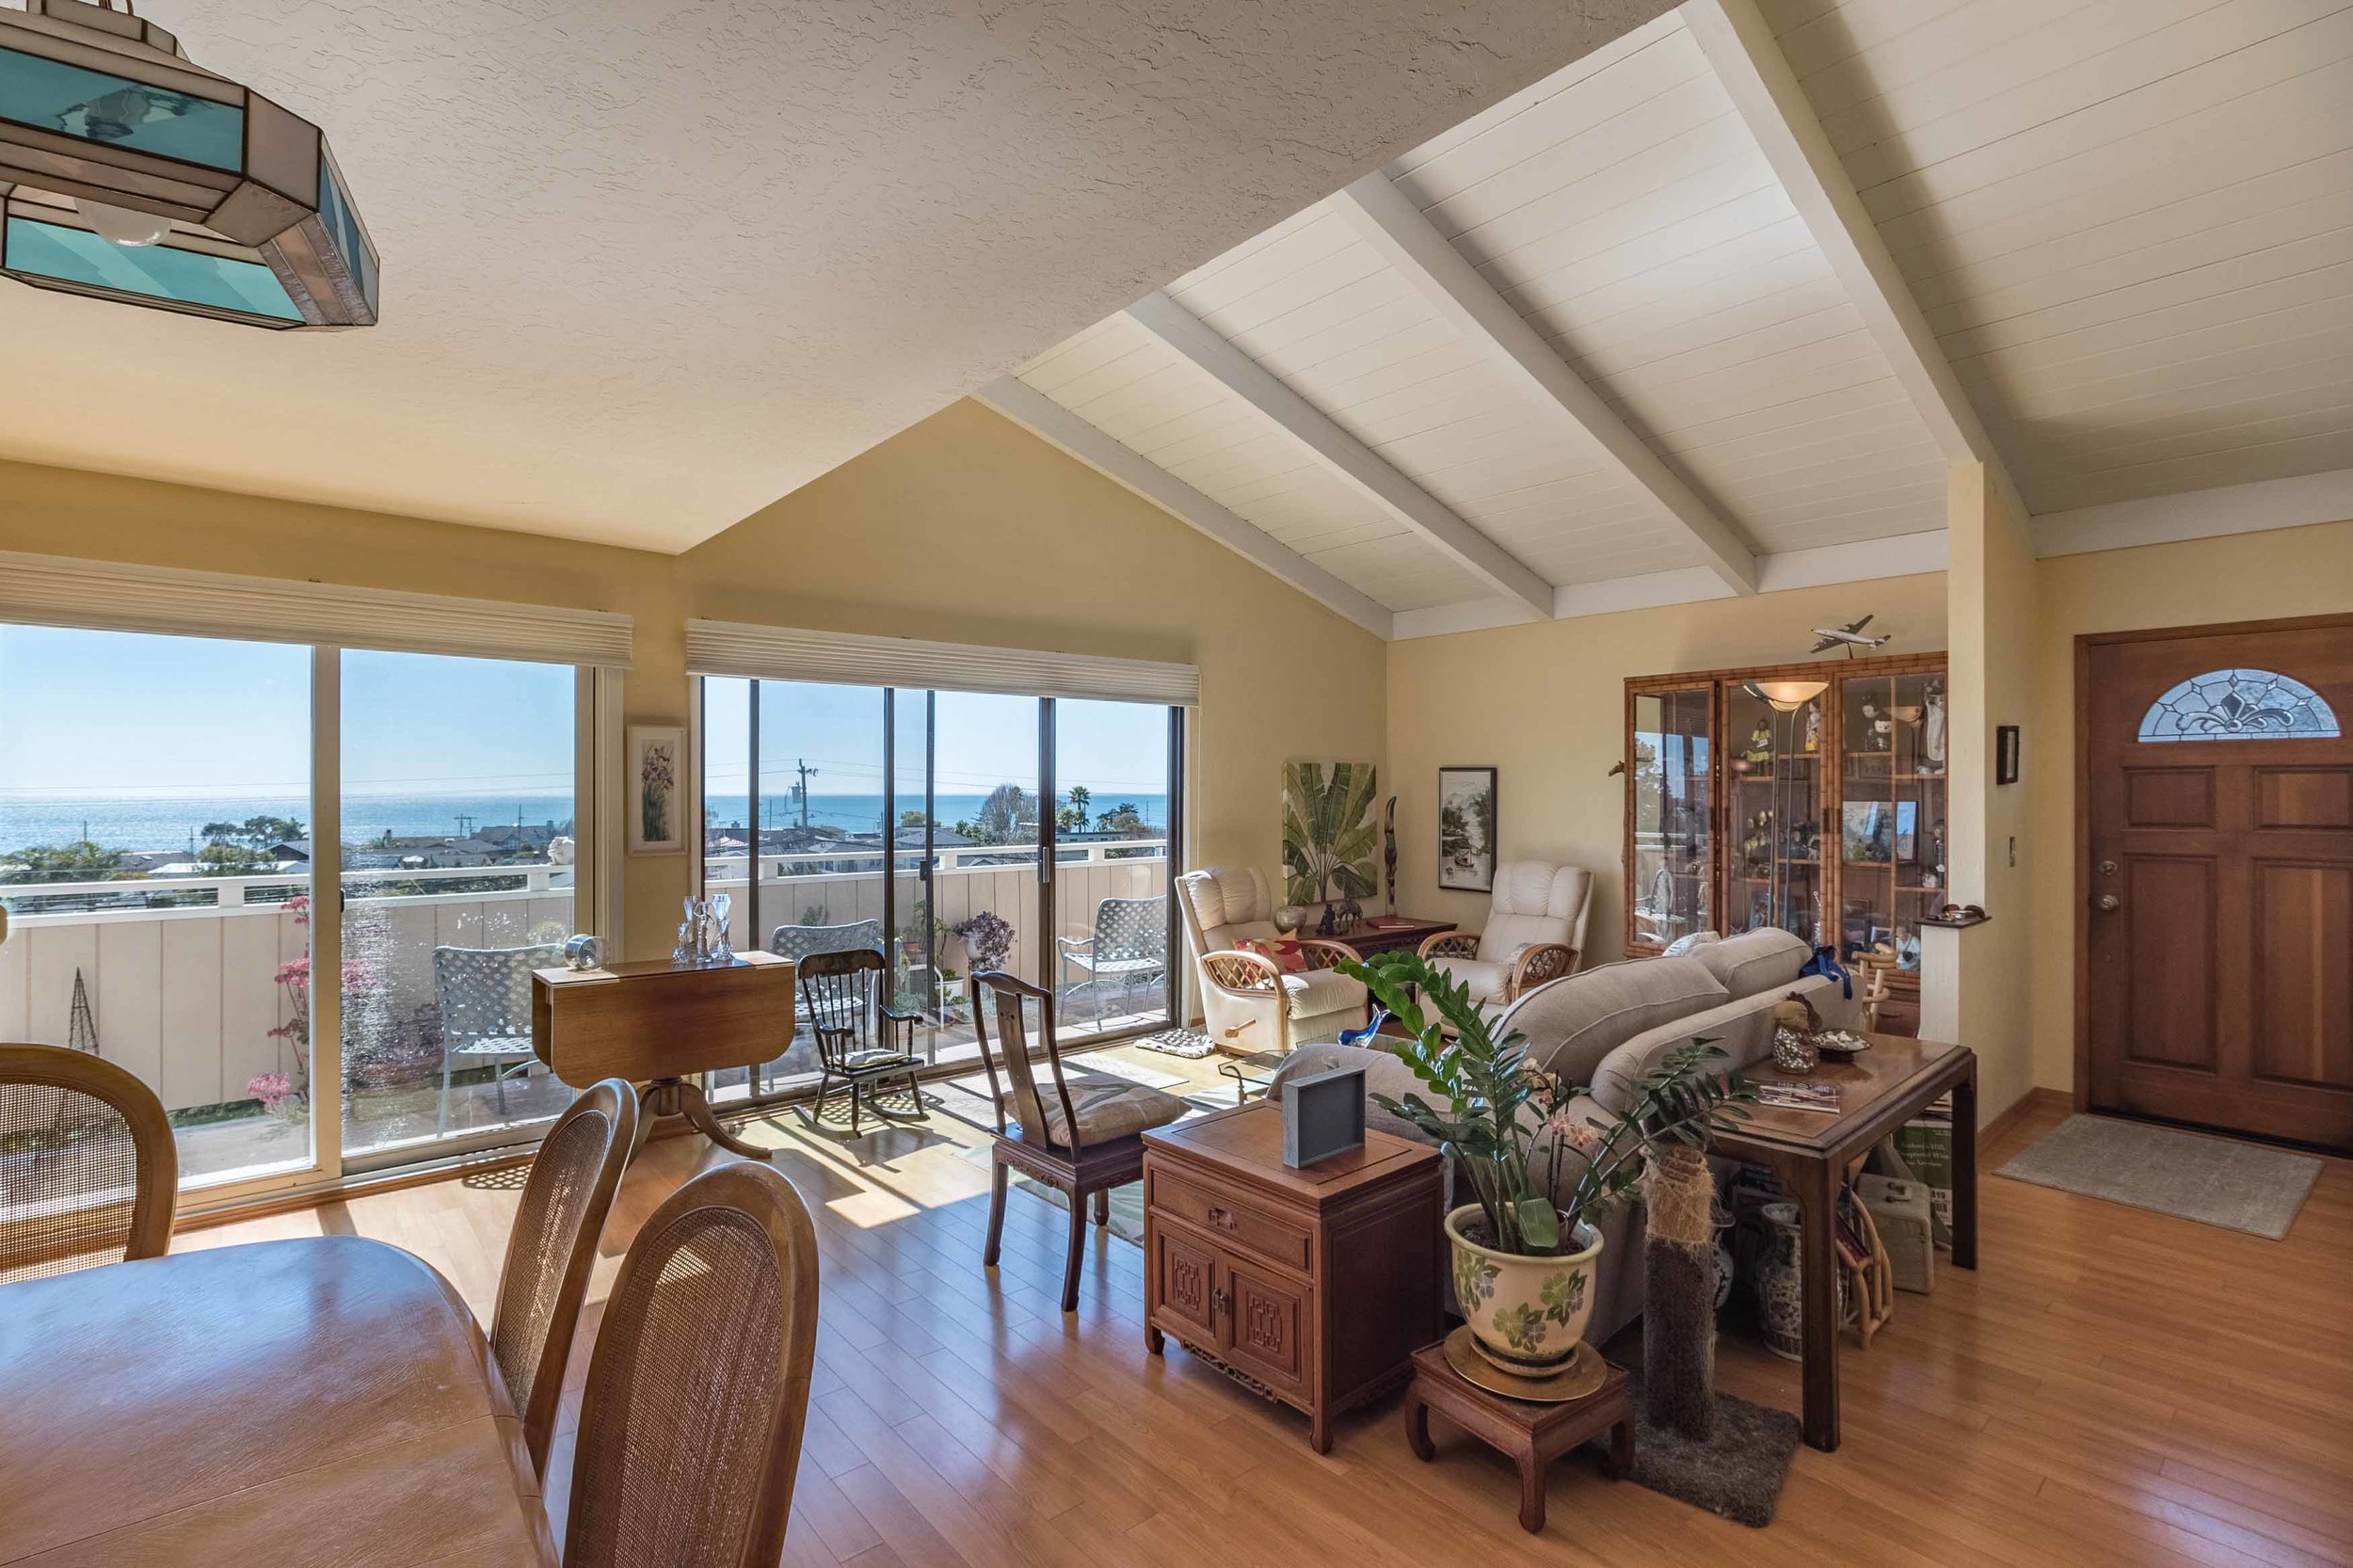 SOLD 261 Sea Ridge Road #4, Aptos • $759,000  3 Bedroom, 2 Bathroom • 1,548 Sq. Ft.